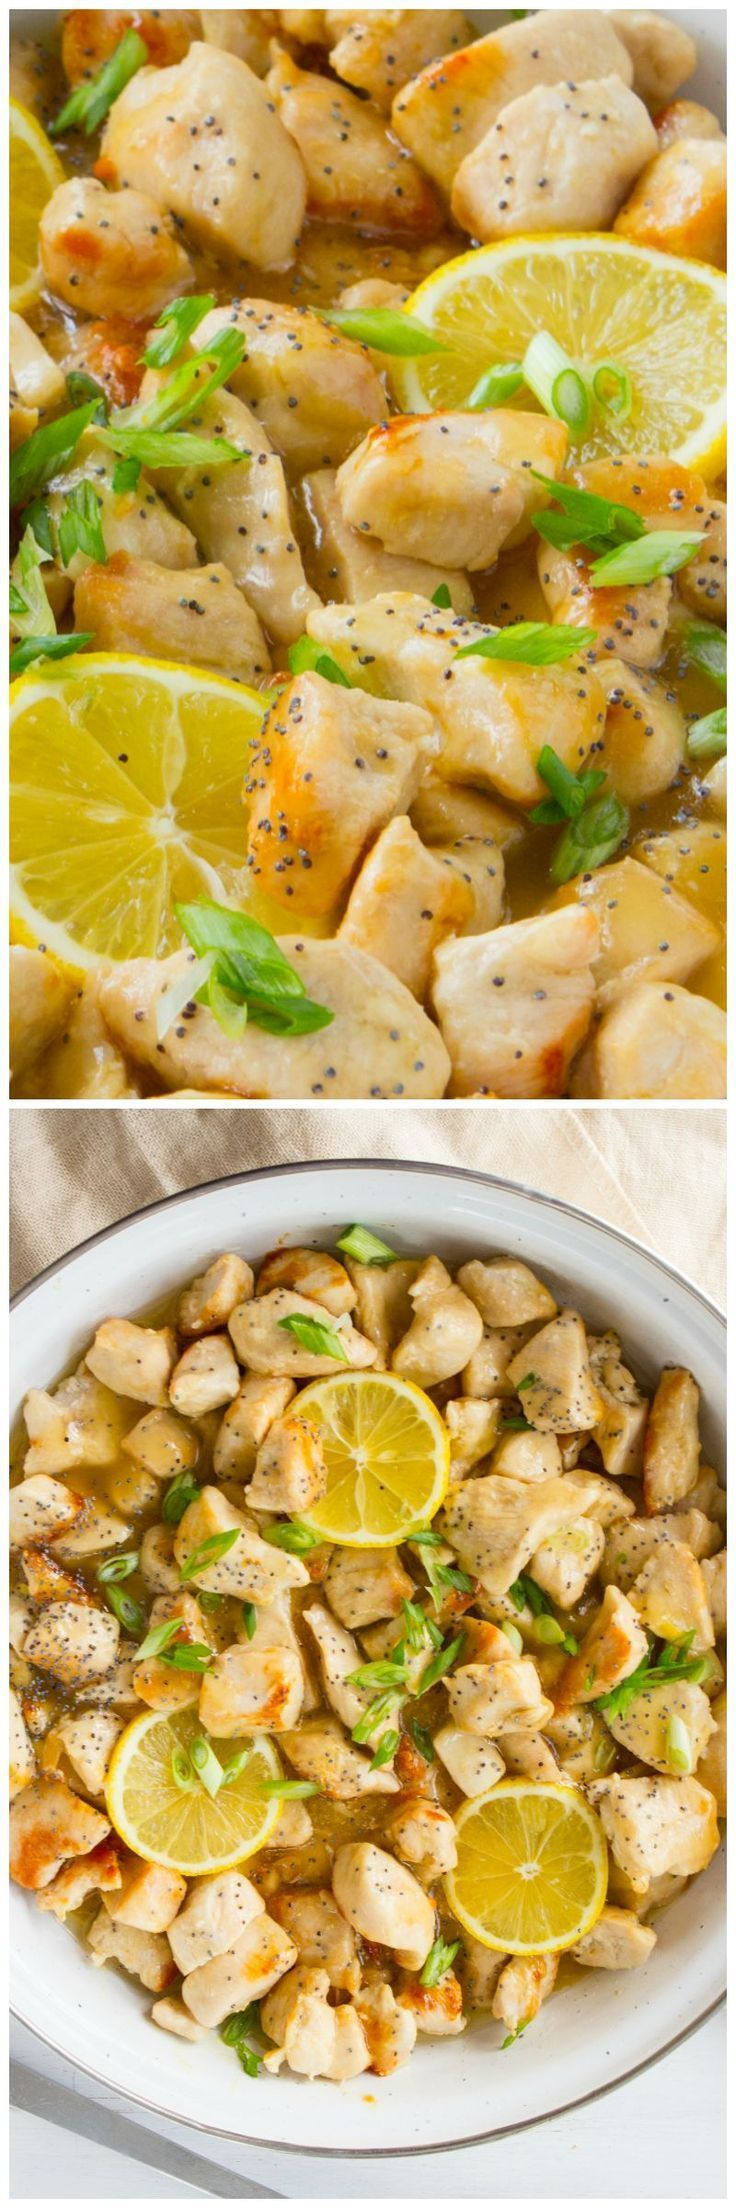 Skinny Lemon Chicken Skillet can be made in one pan, quickly and has delicious lemony peppery flavor! #chickenskillet